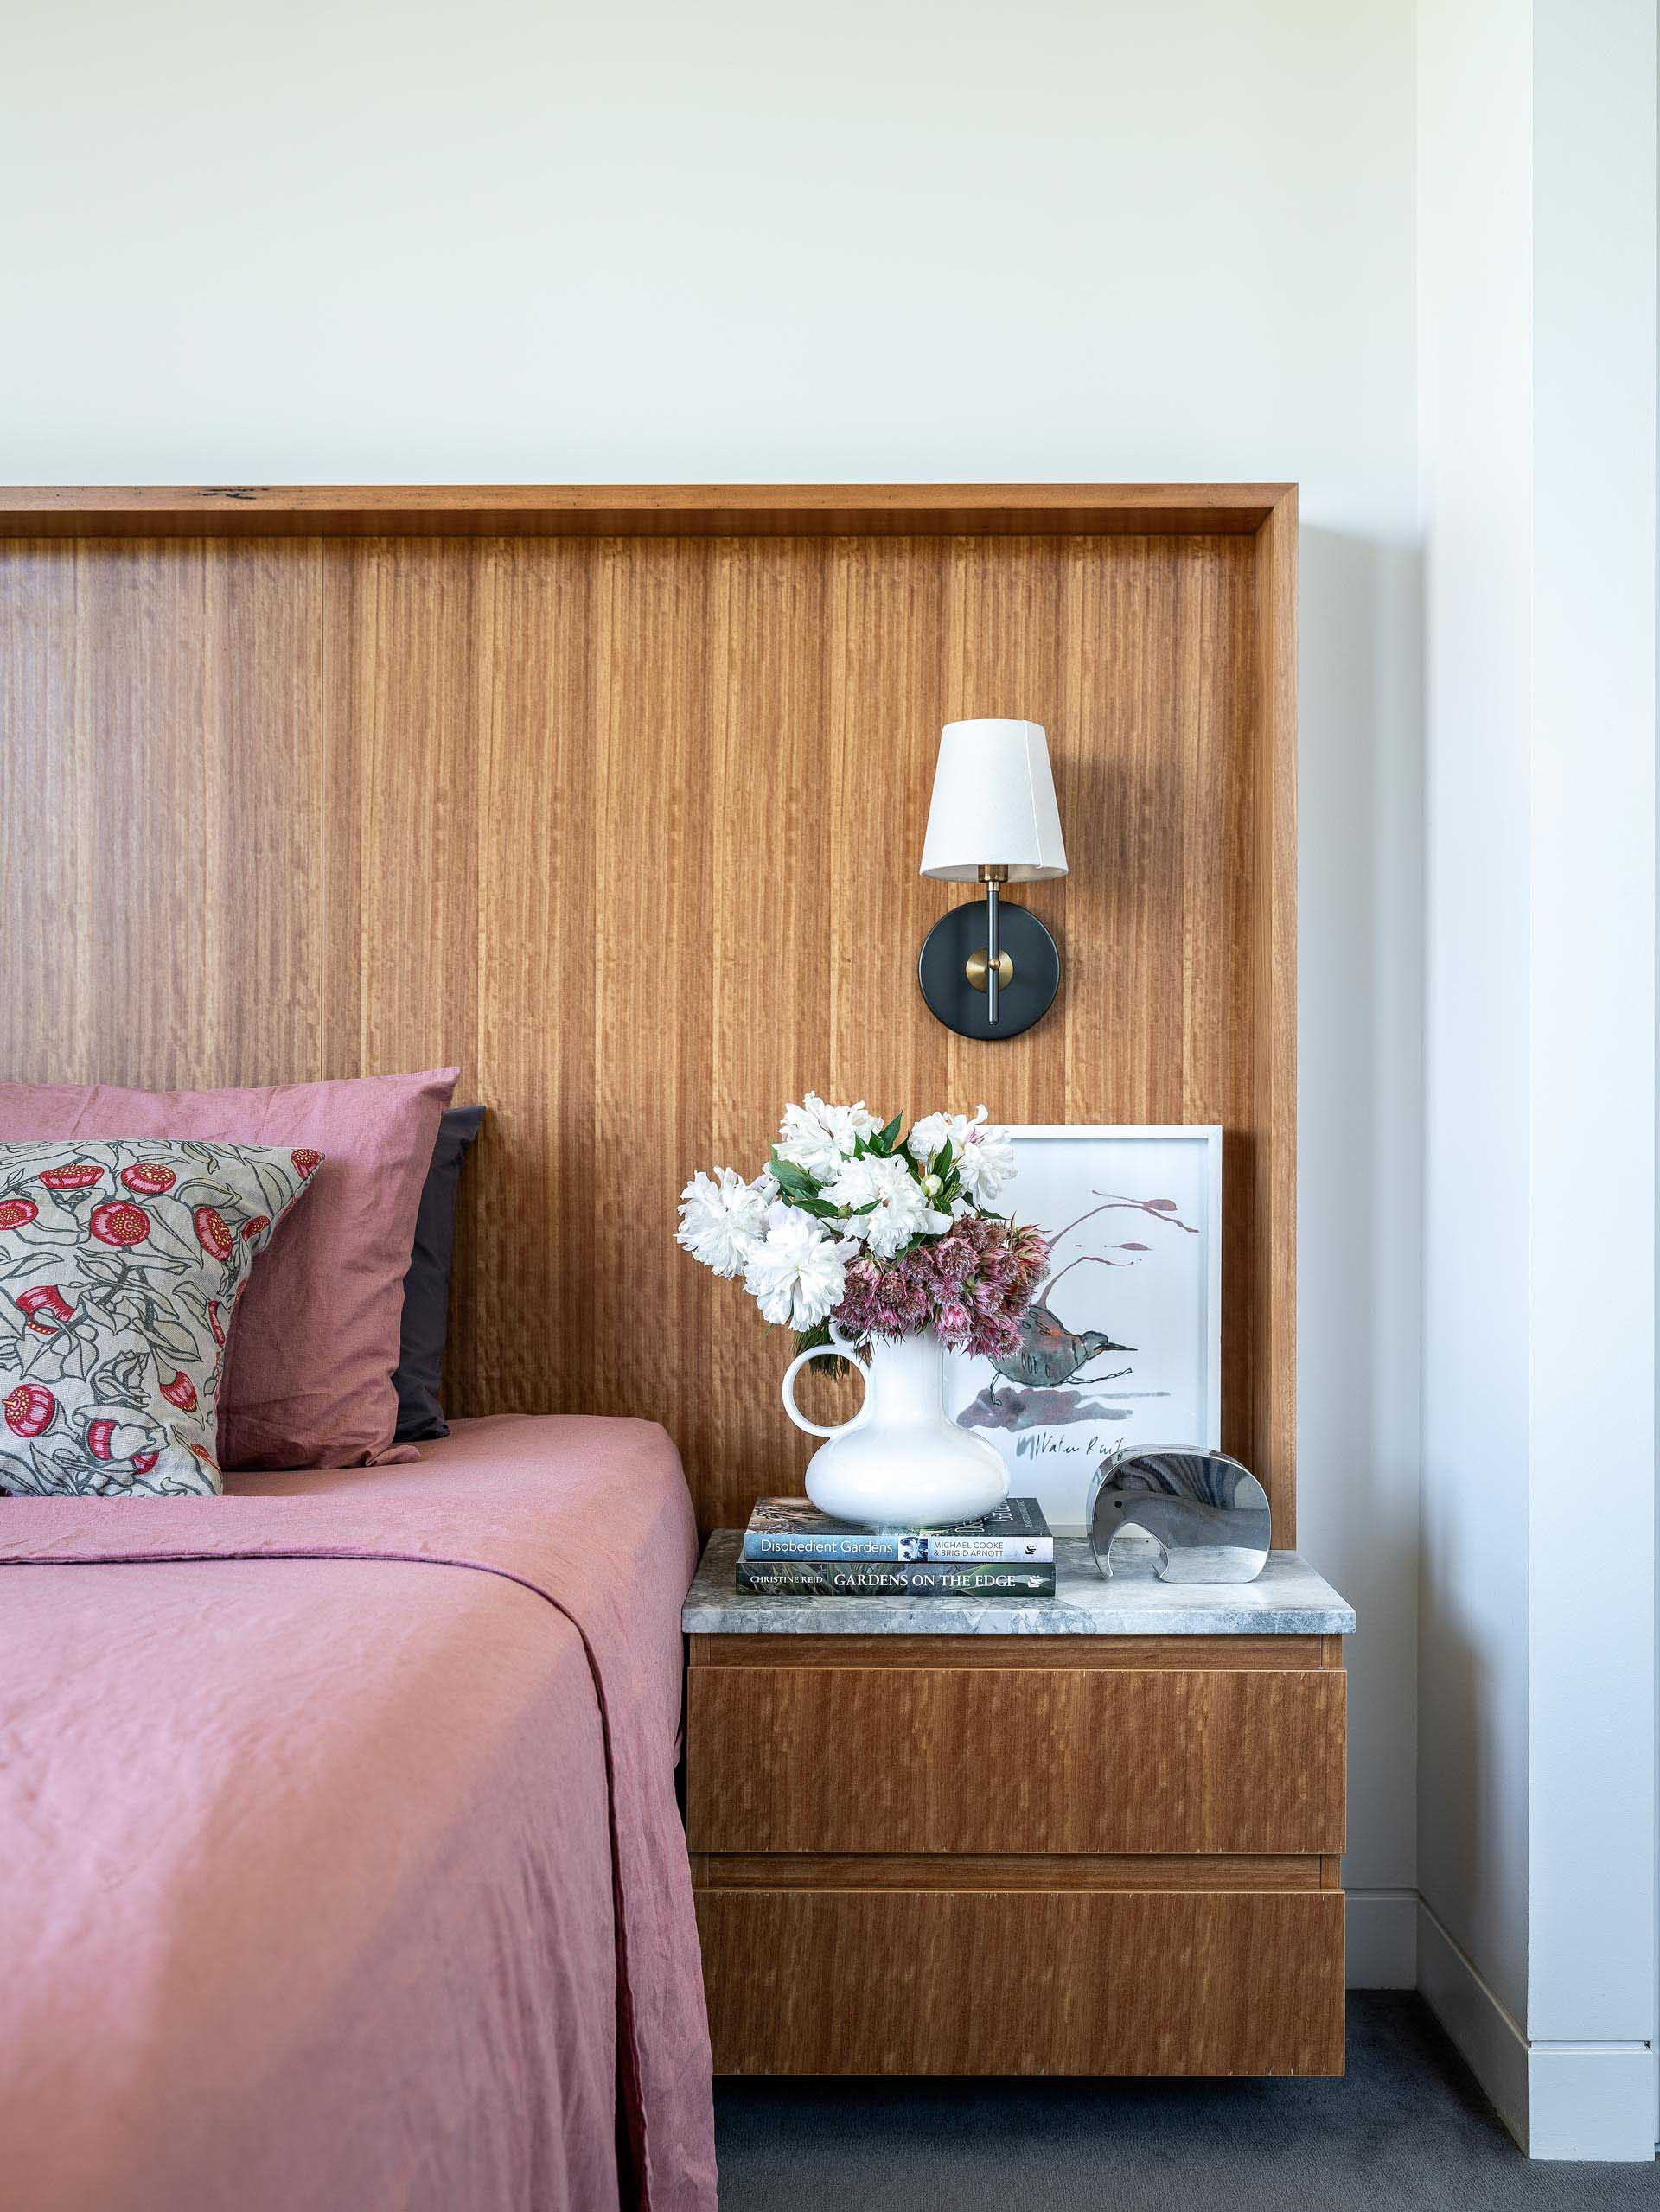 In this modern bedroom, a wide wood headboard incorporates a floating bedside table.